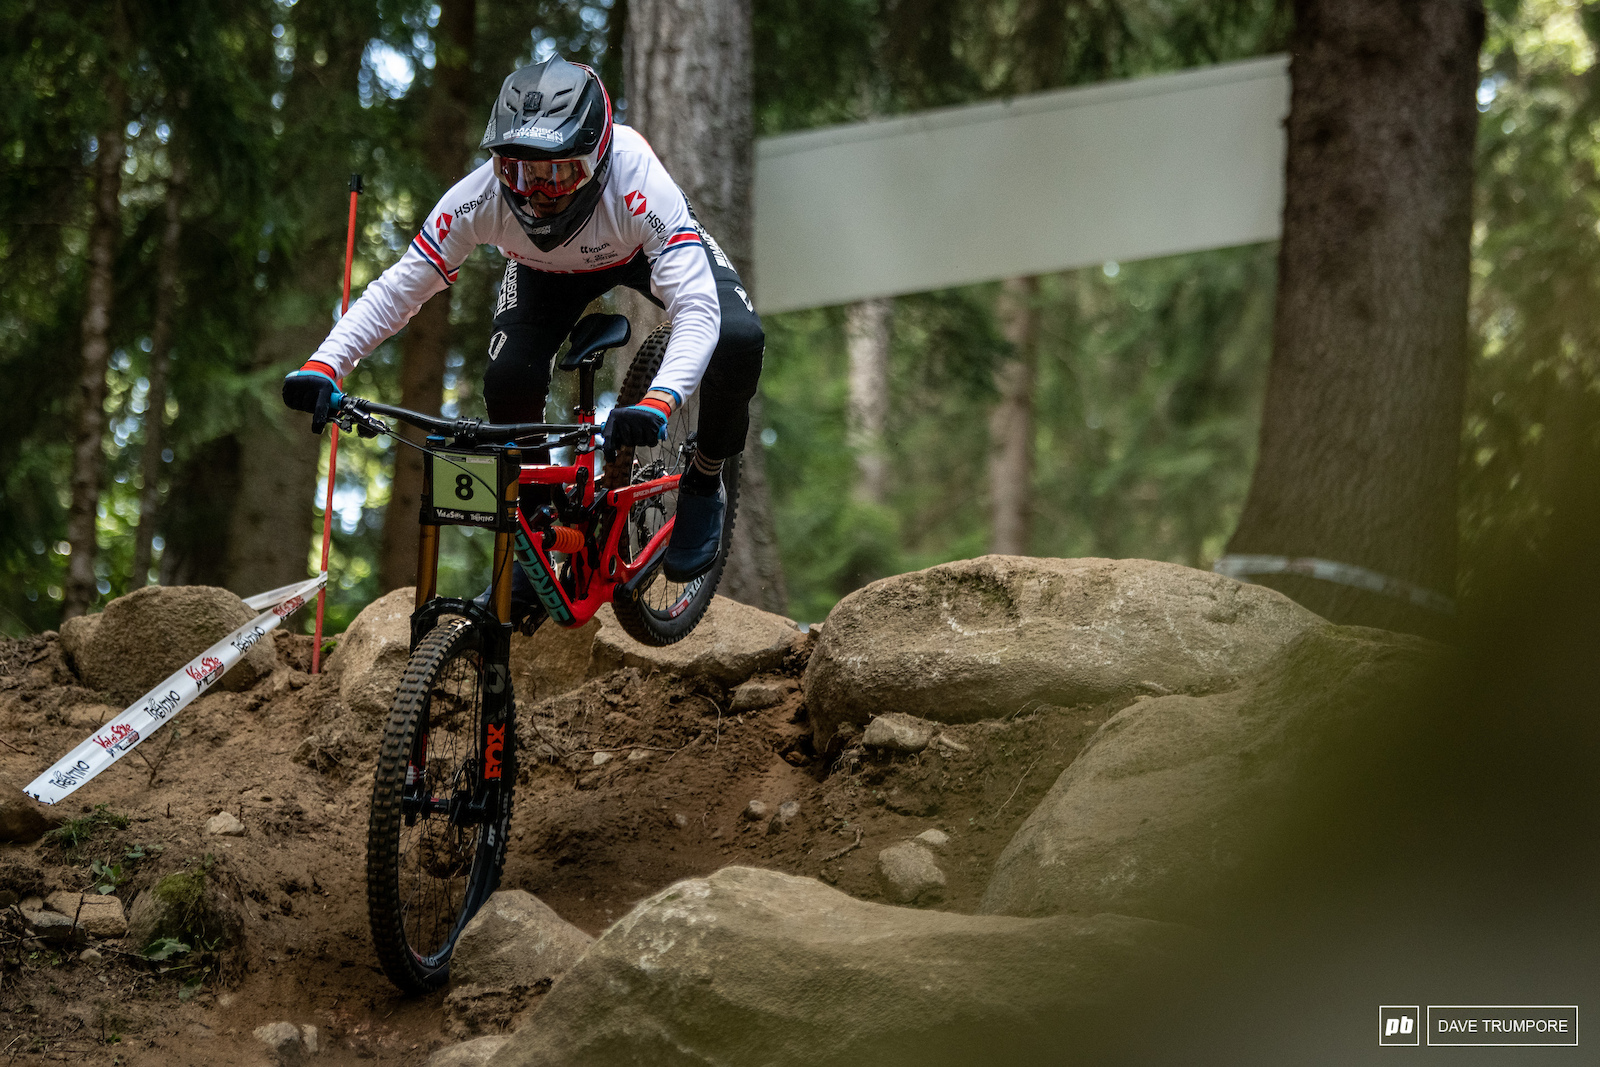 Jordan Williams had a huge crash in practice but is still in the mix amongst the Junior Men